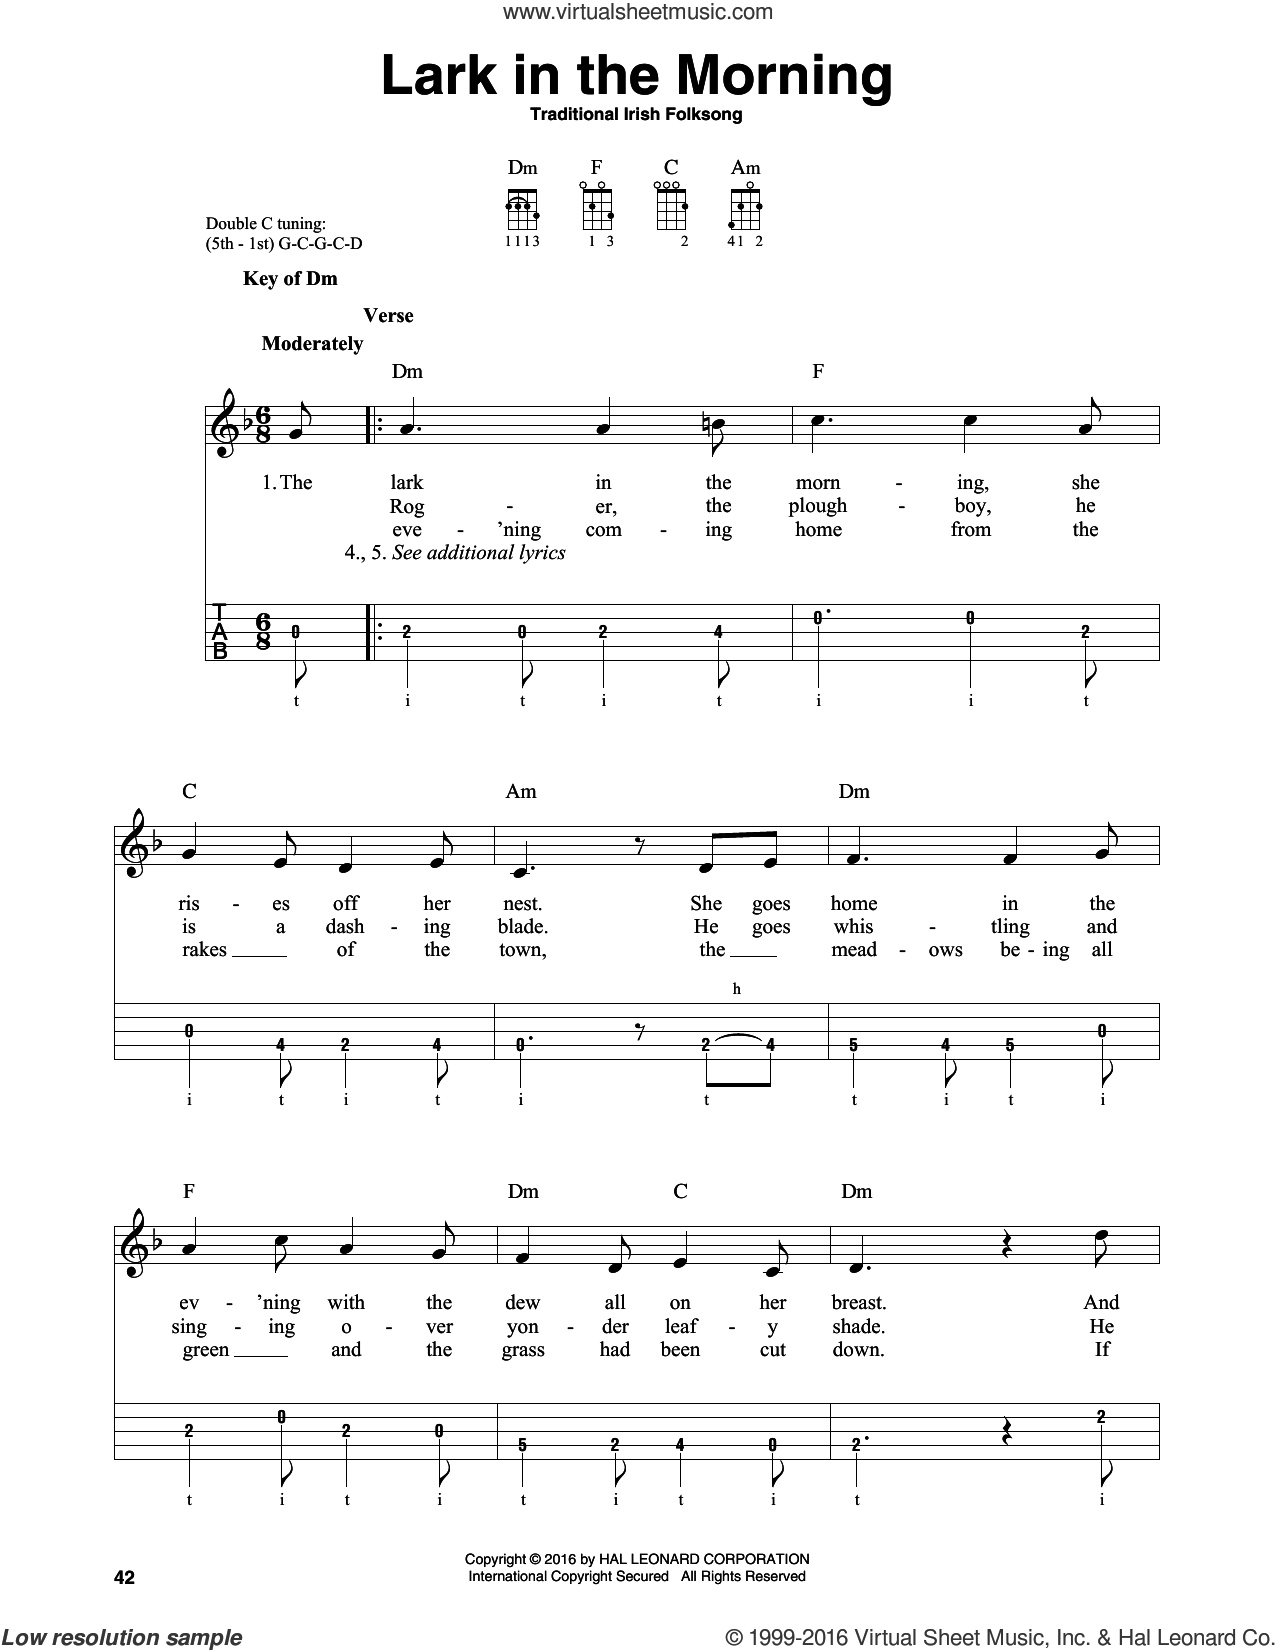 Lark In The Morning sheet music for banjo solo. Score Image Preview.